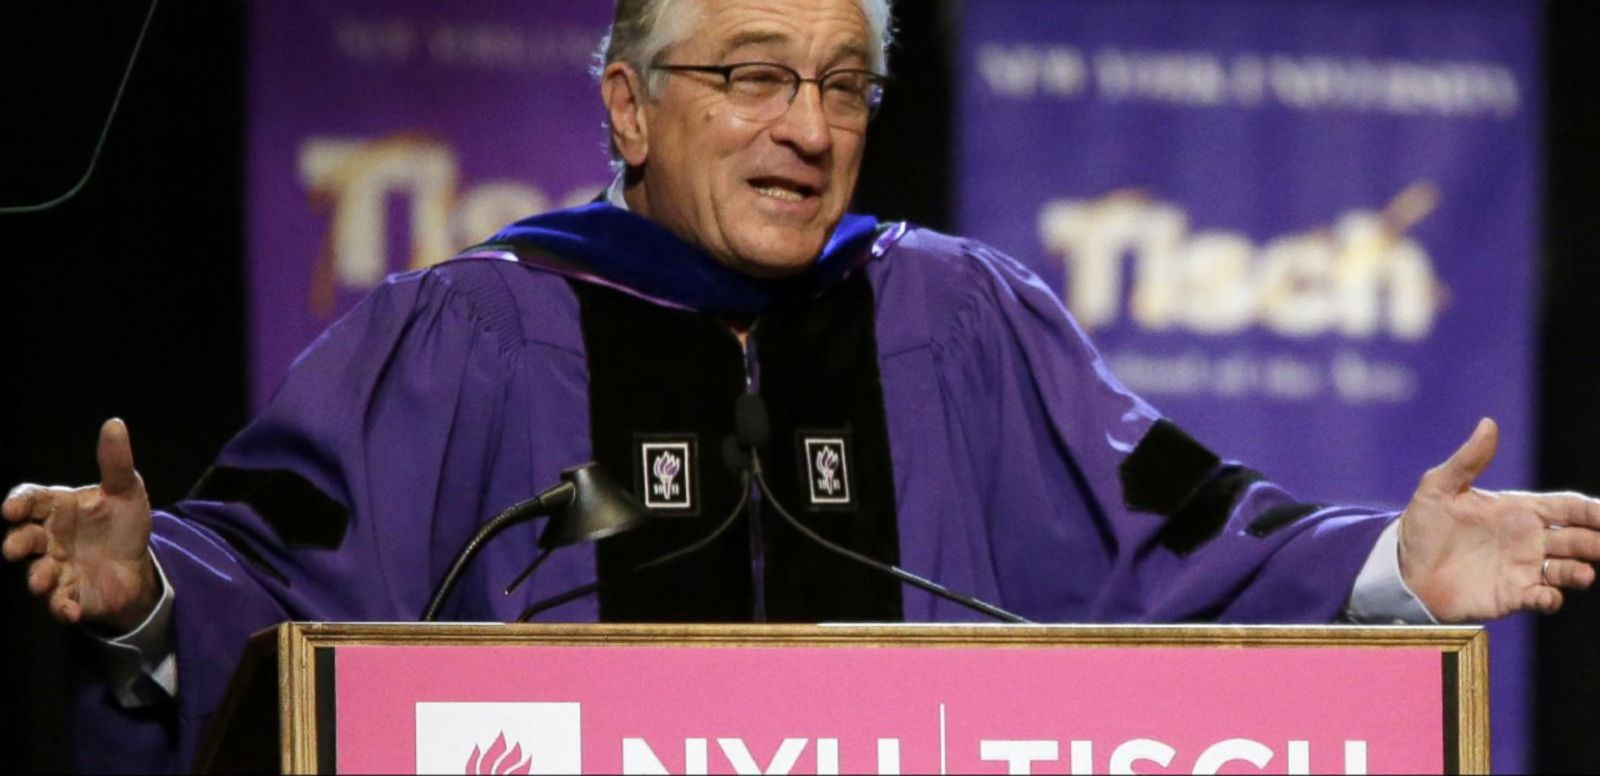 VIDEO: Robert De Niro Delivers 'Tough Love' Graduation Speech